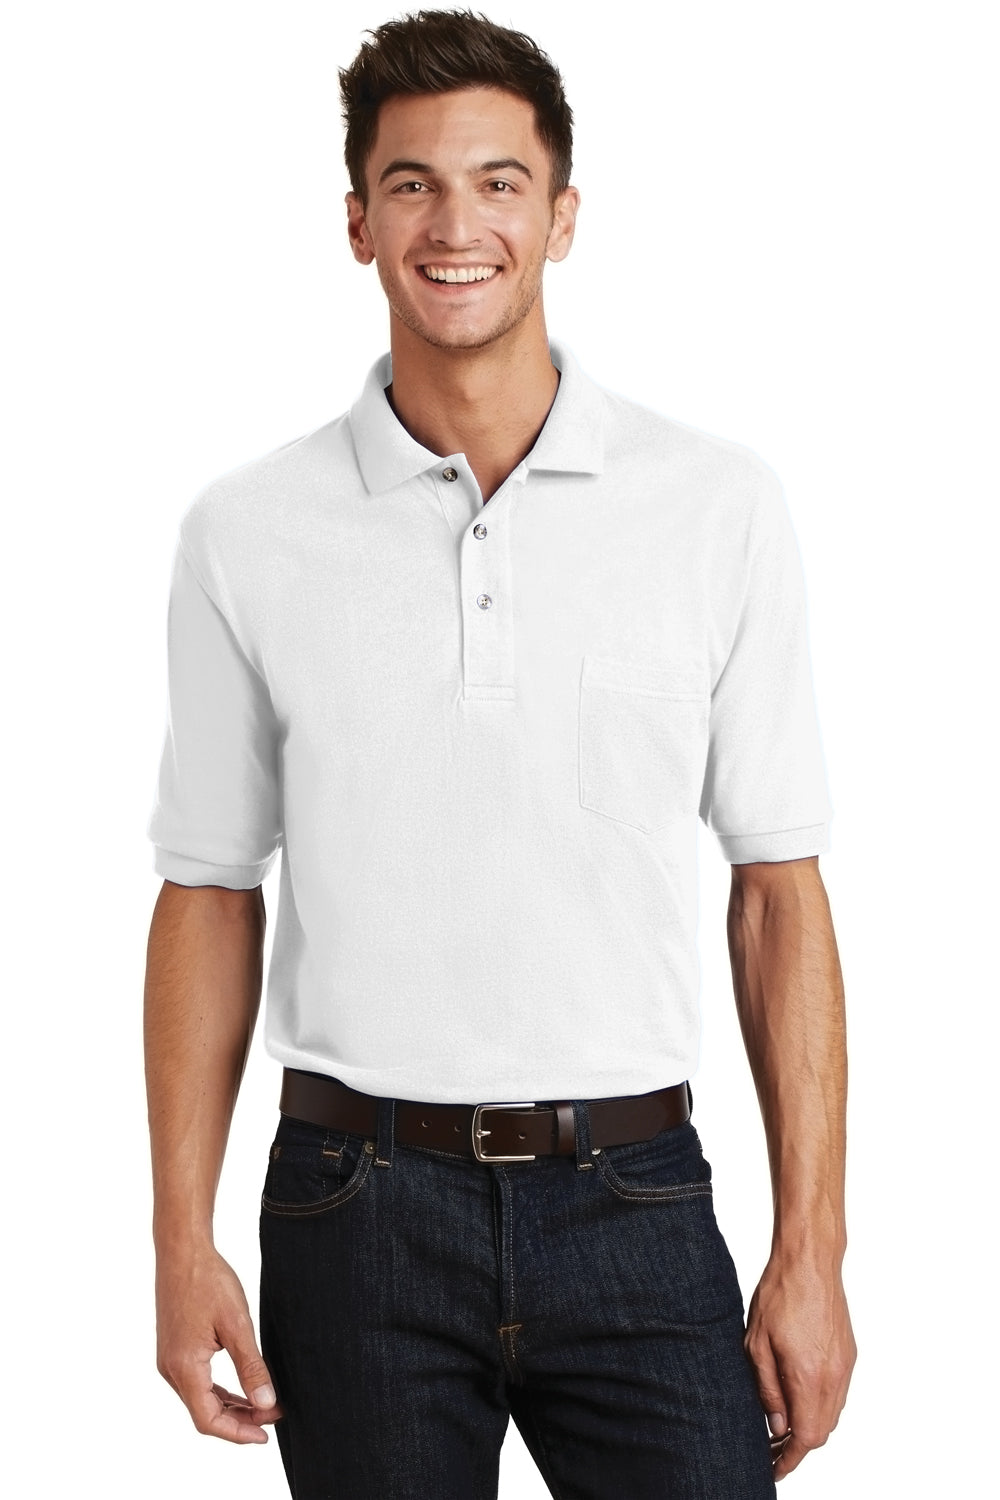 Port Authority K420P Mens Short Sleeve Polo Shirt w/ Pocket White Front